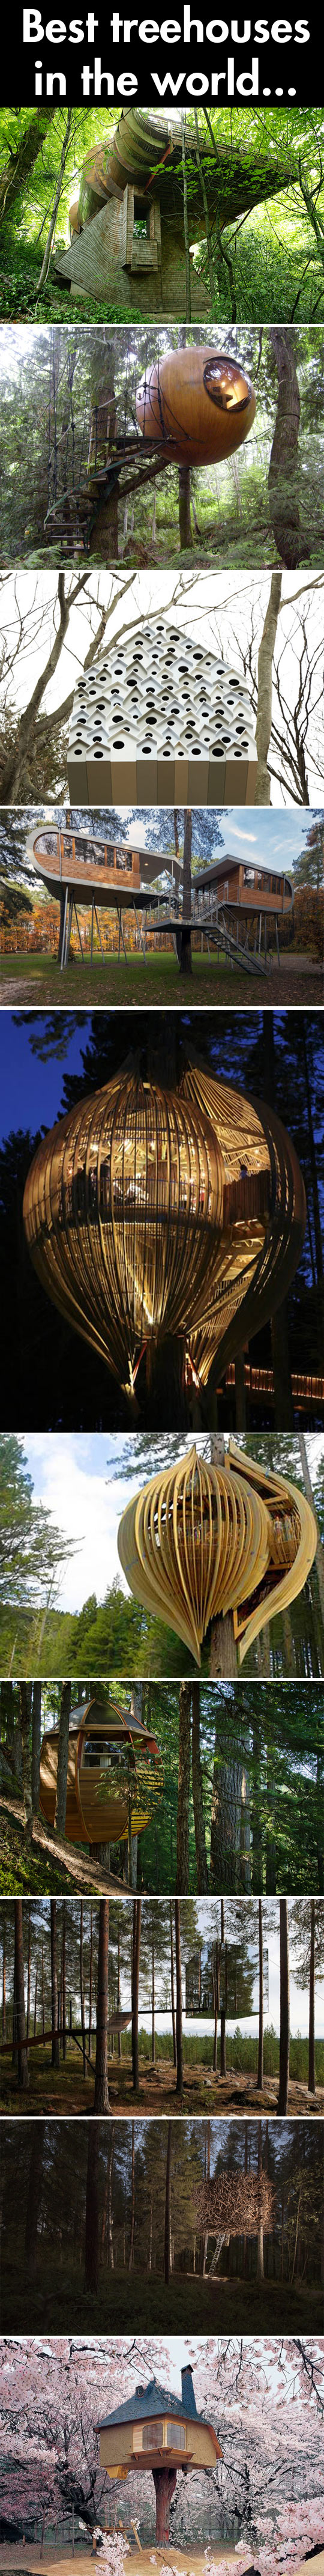 Tree houses of the world…